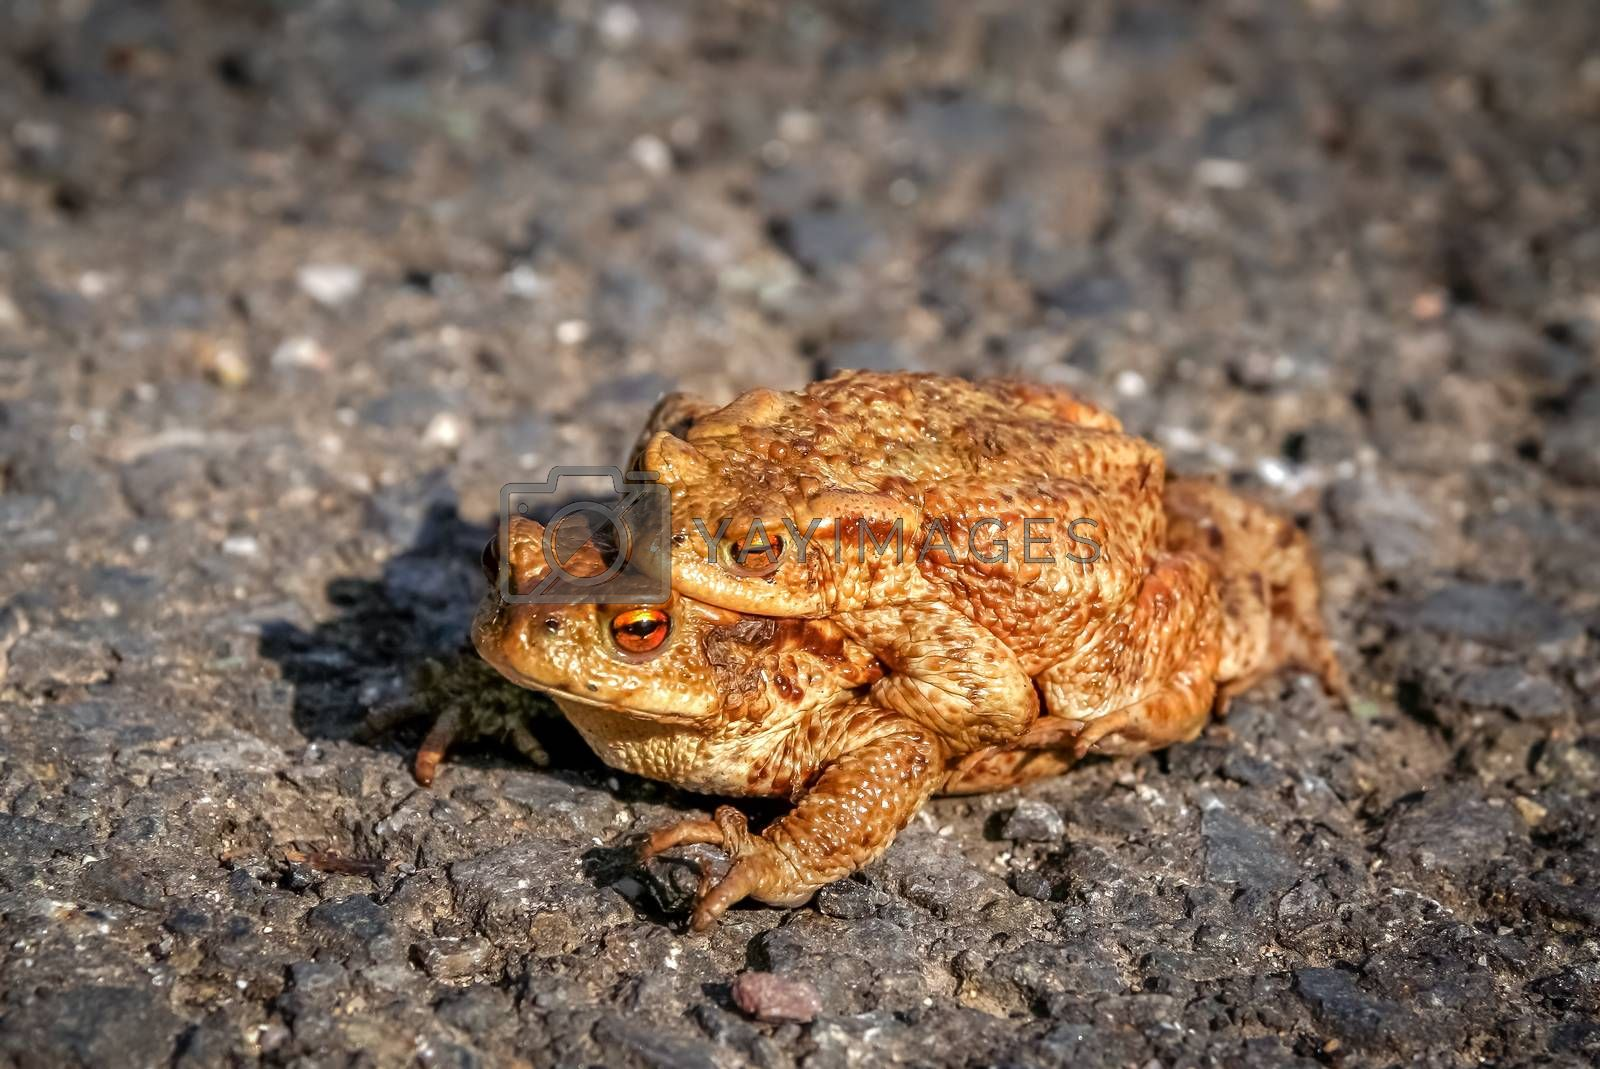 Frogs having sex in the mating season